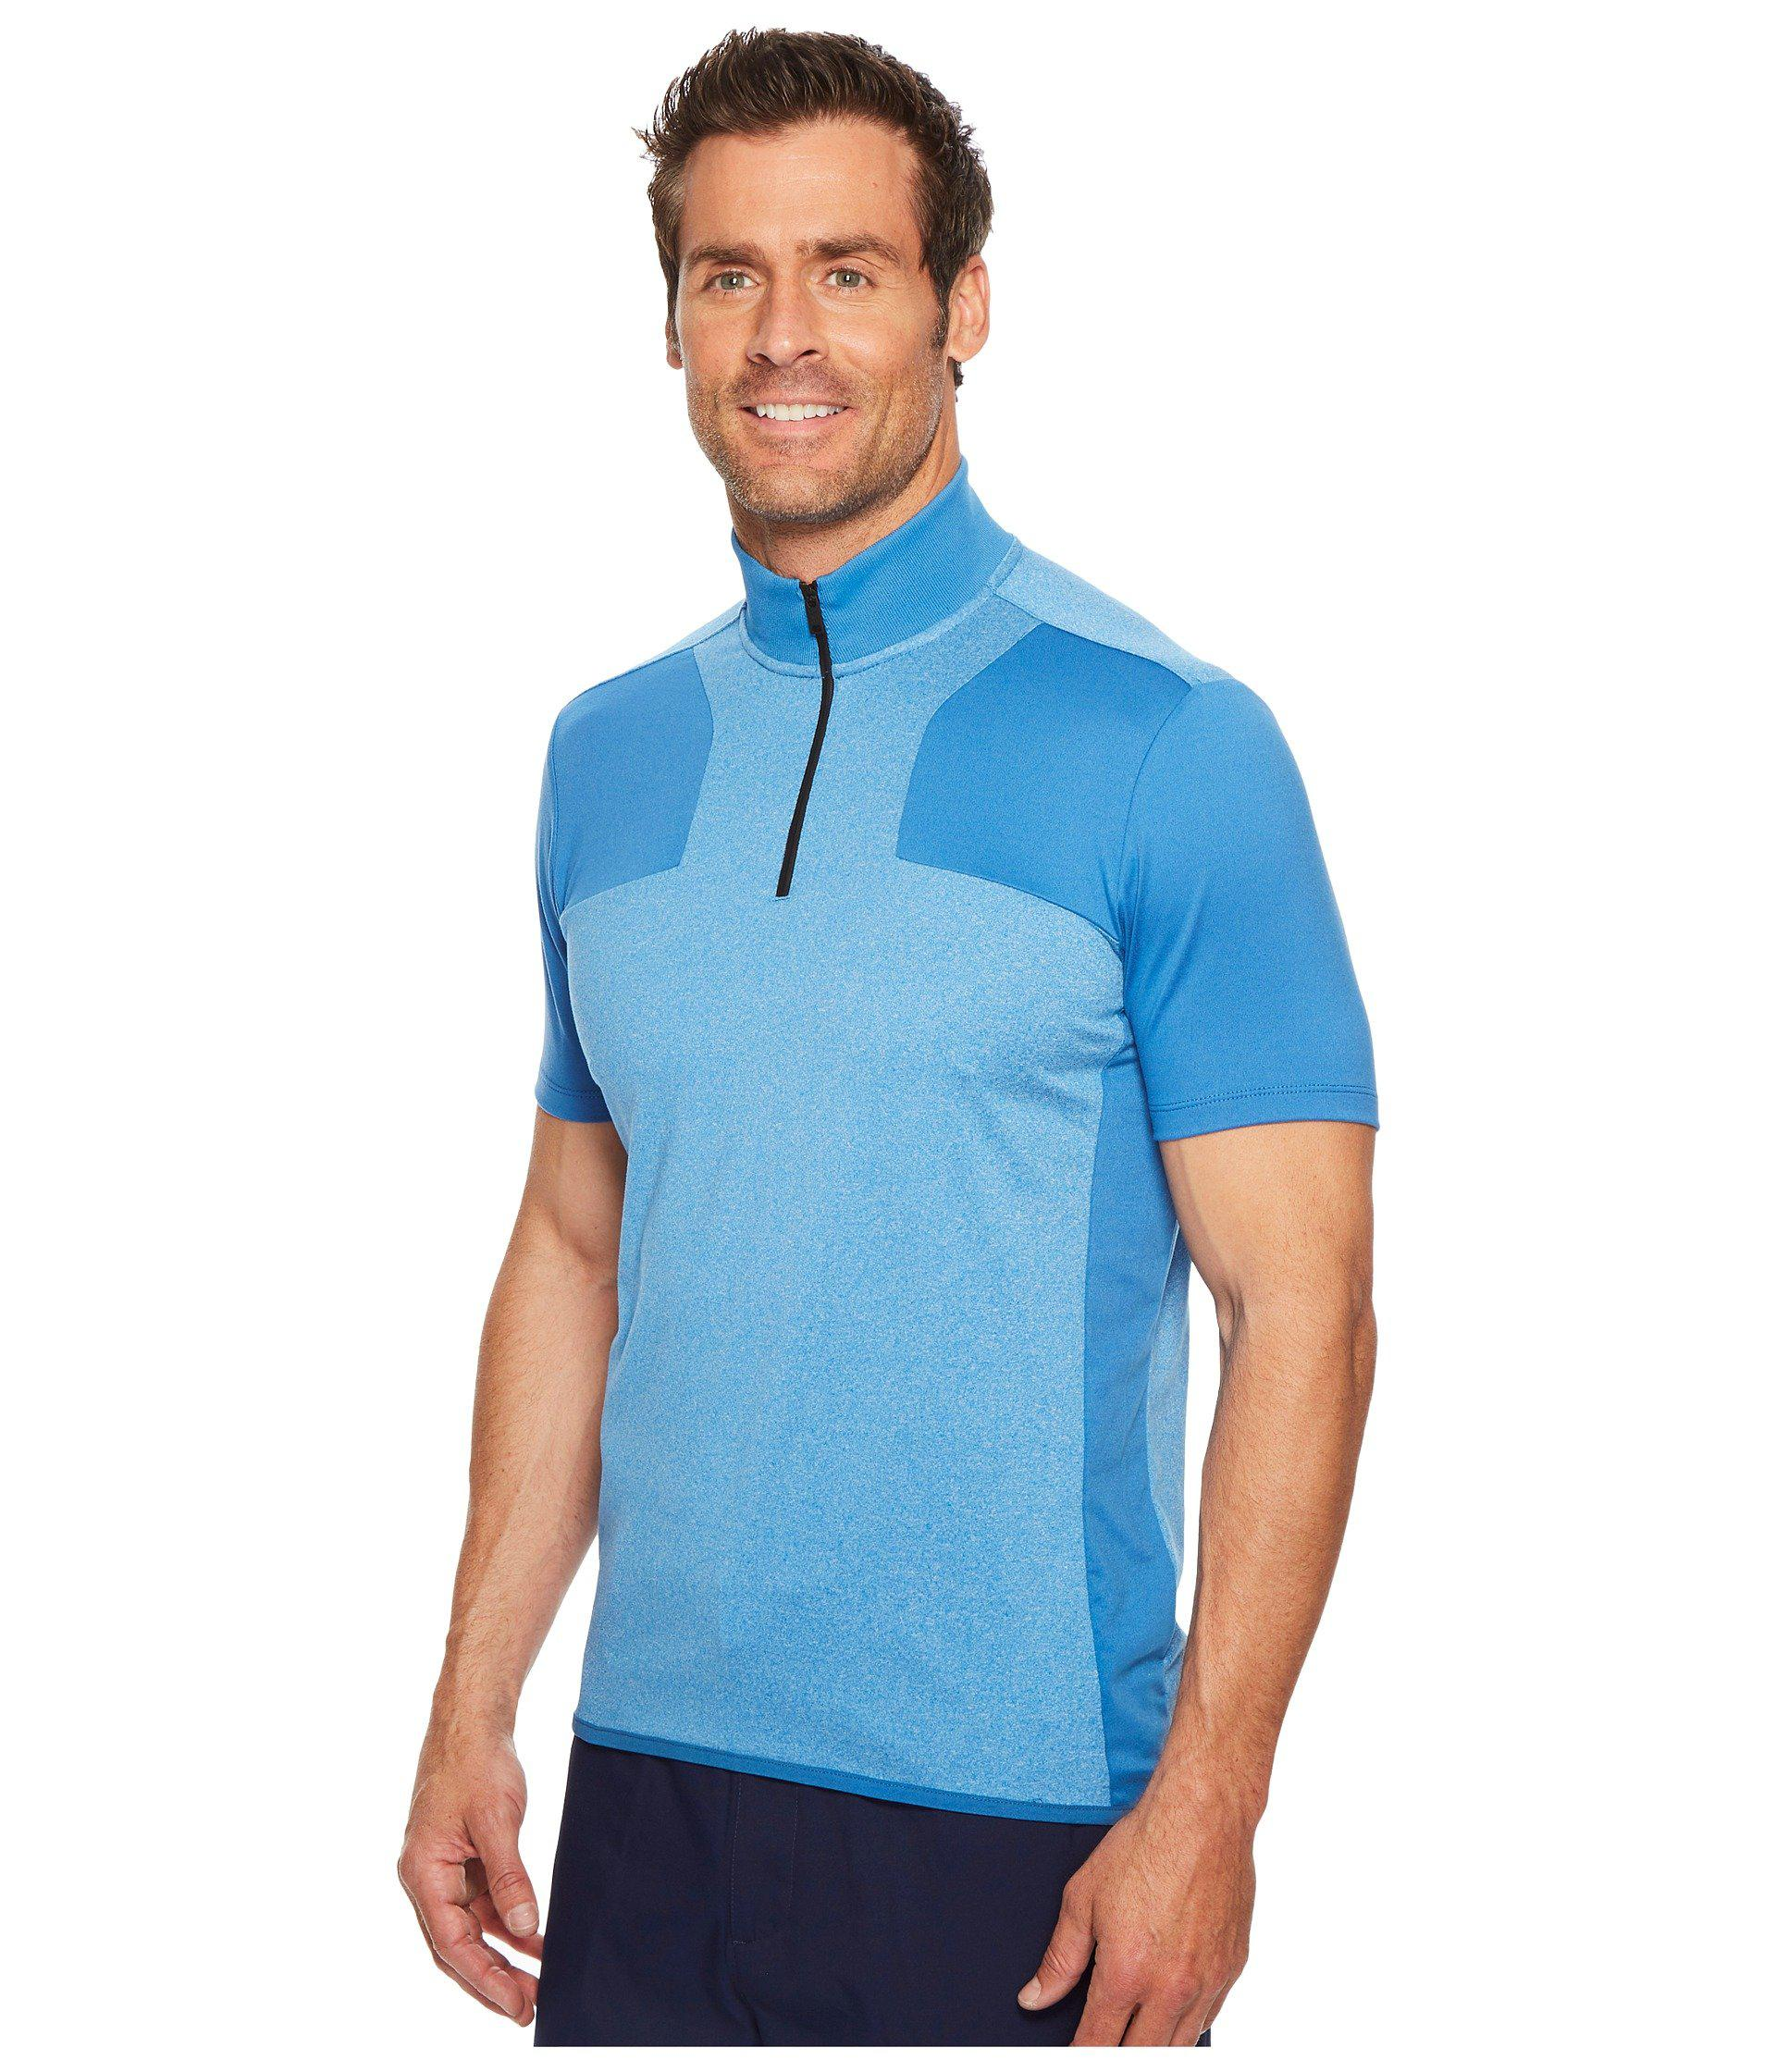 dae0b5c7a3 Lyst - Perry Ellis Pe360 Active Color Block Zip Polo in Blue for Men - Save  44.89795918367347%